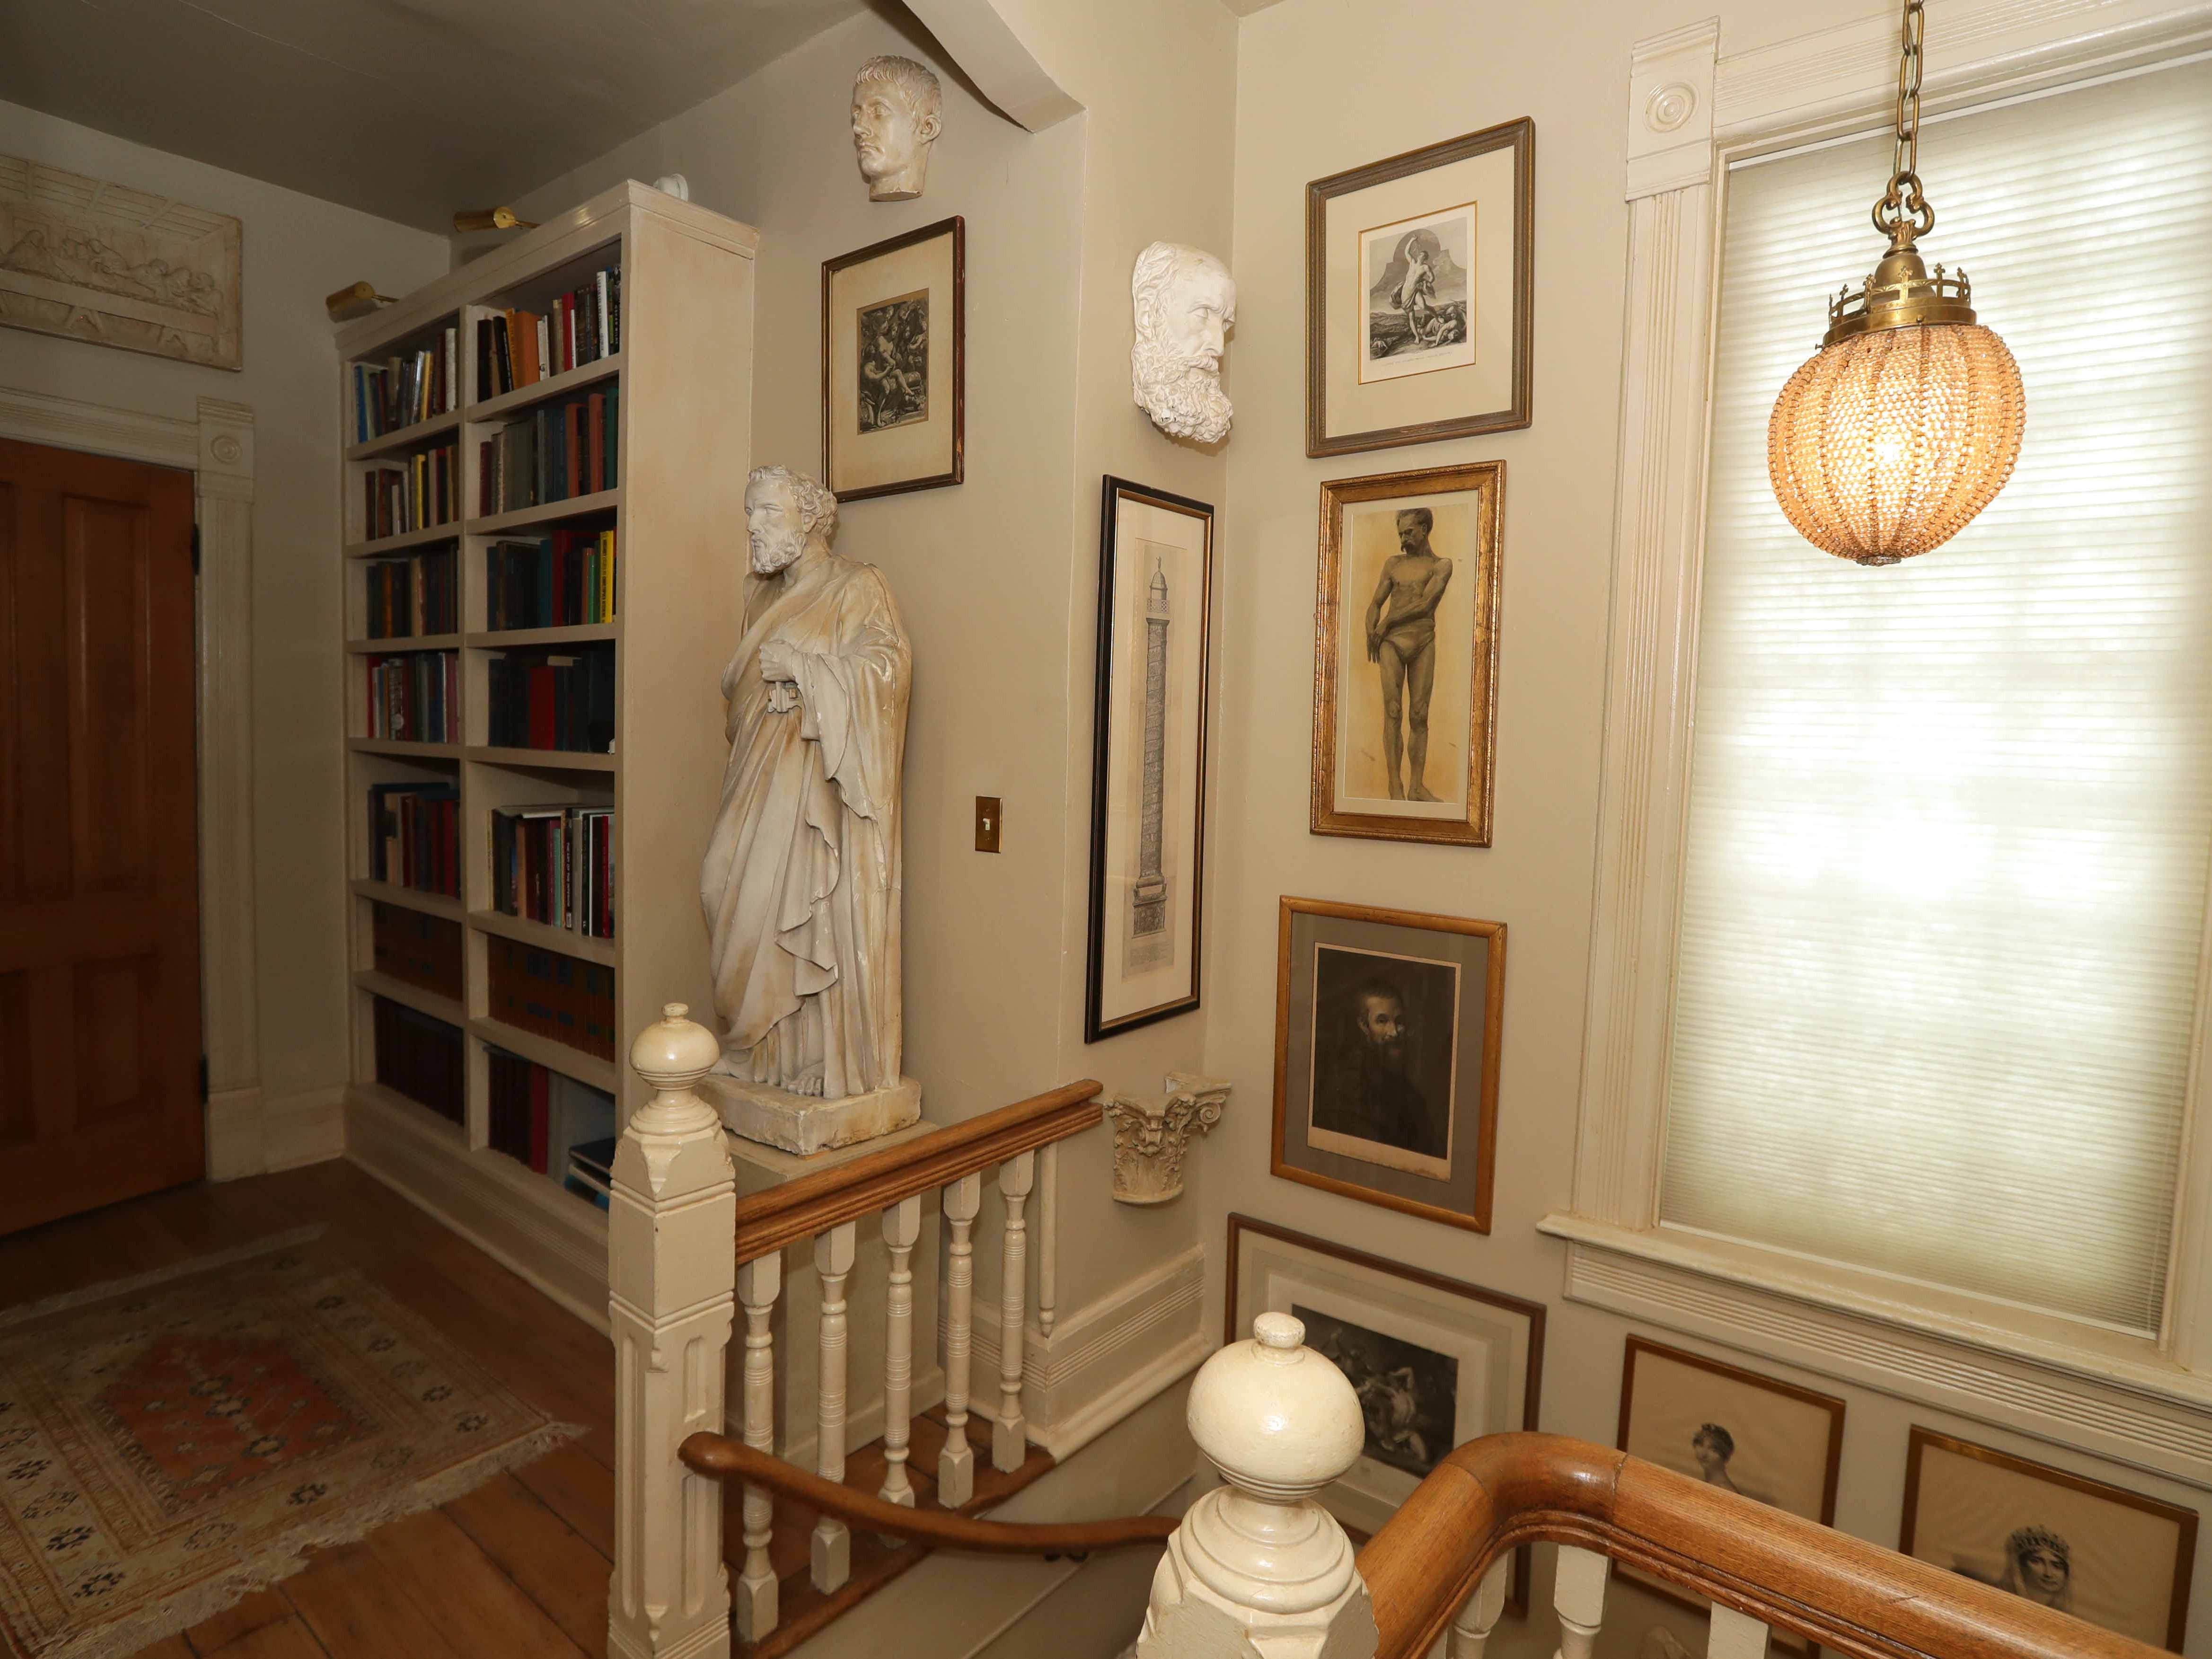 Plaster statues and busts such as these on the second floor are featured throughout the home.